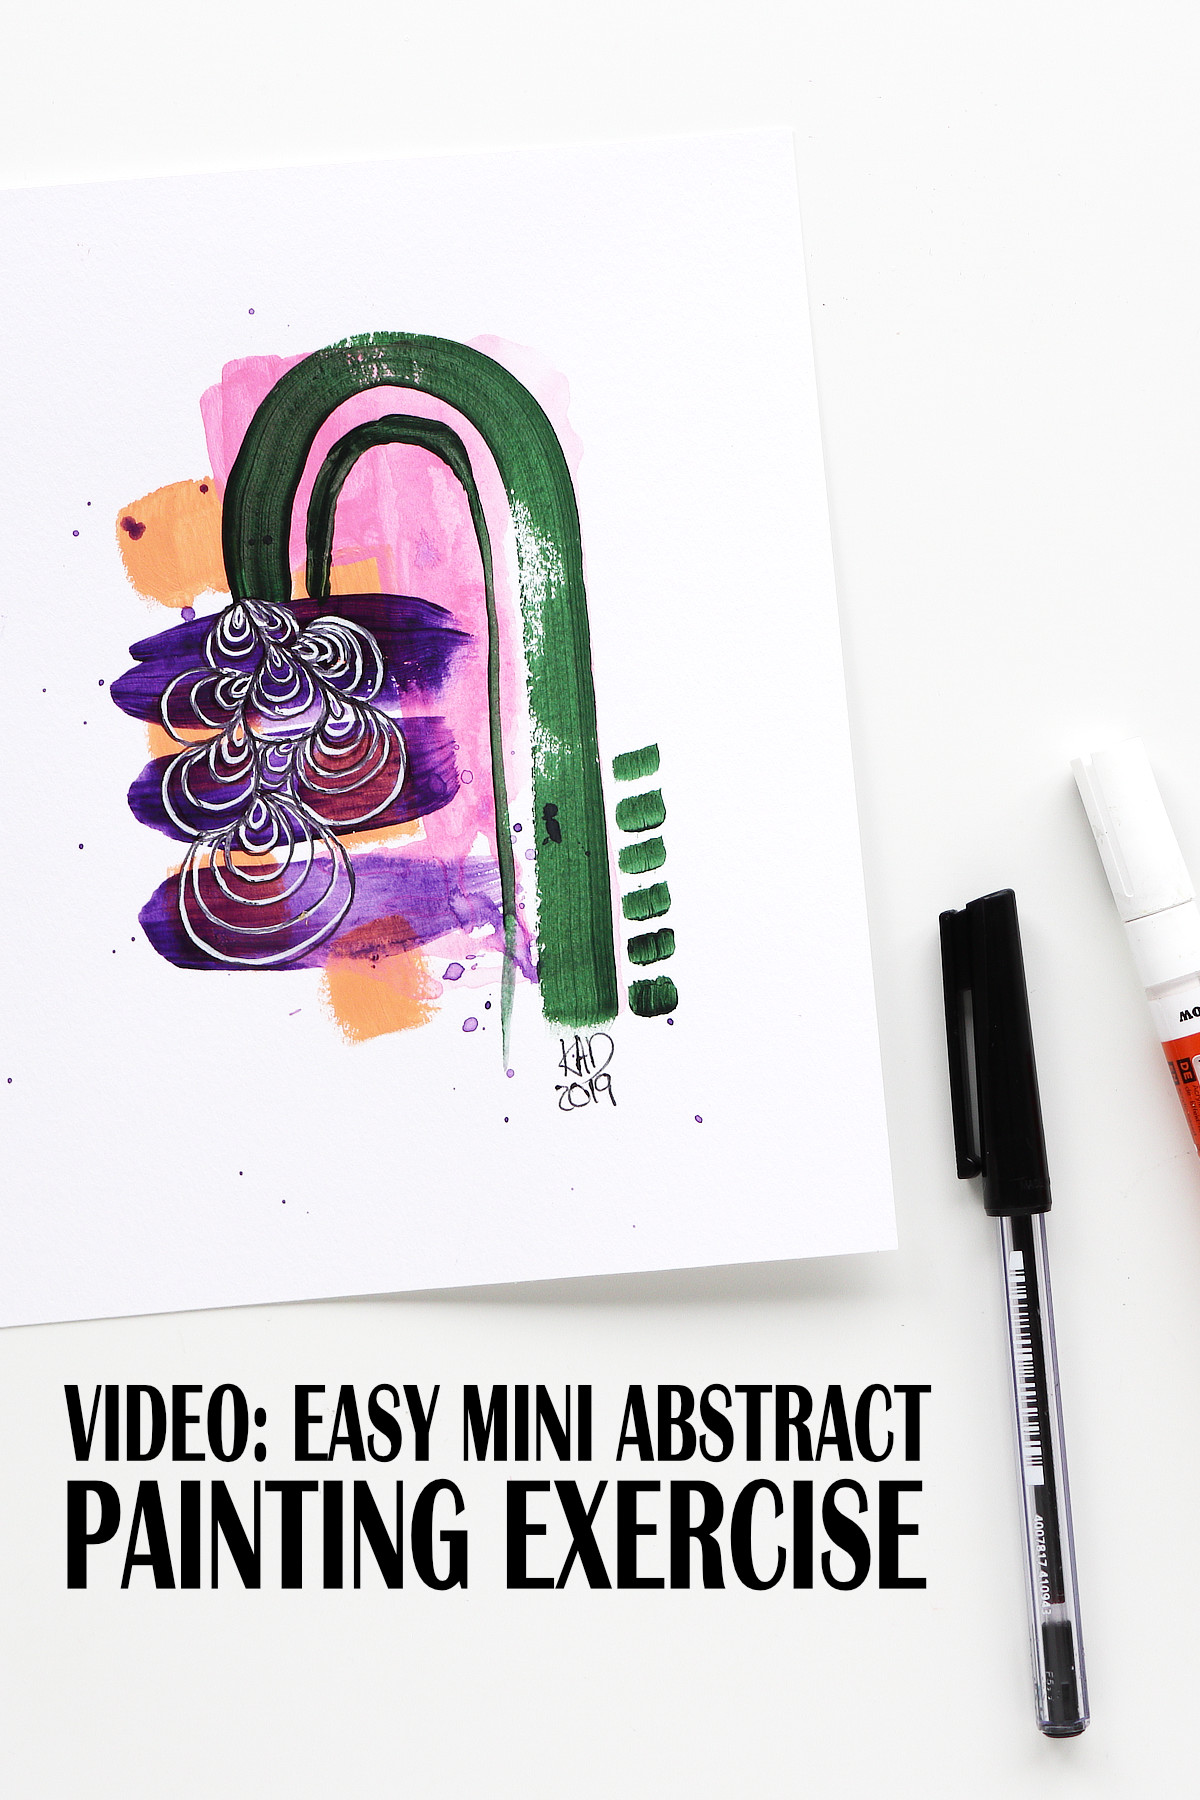 Easy mini abstract exercise video by Kim Dellow